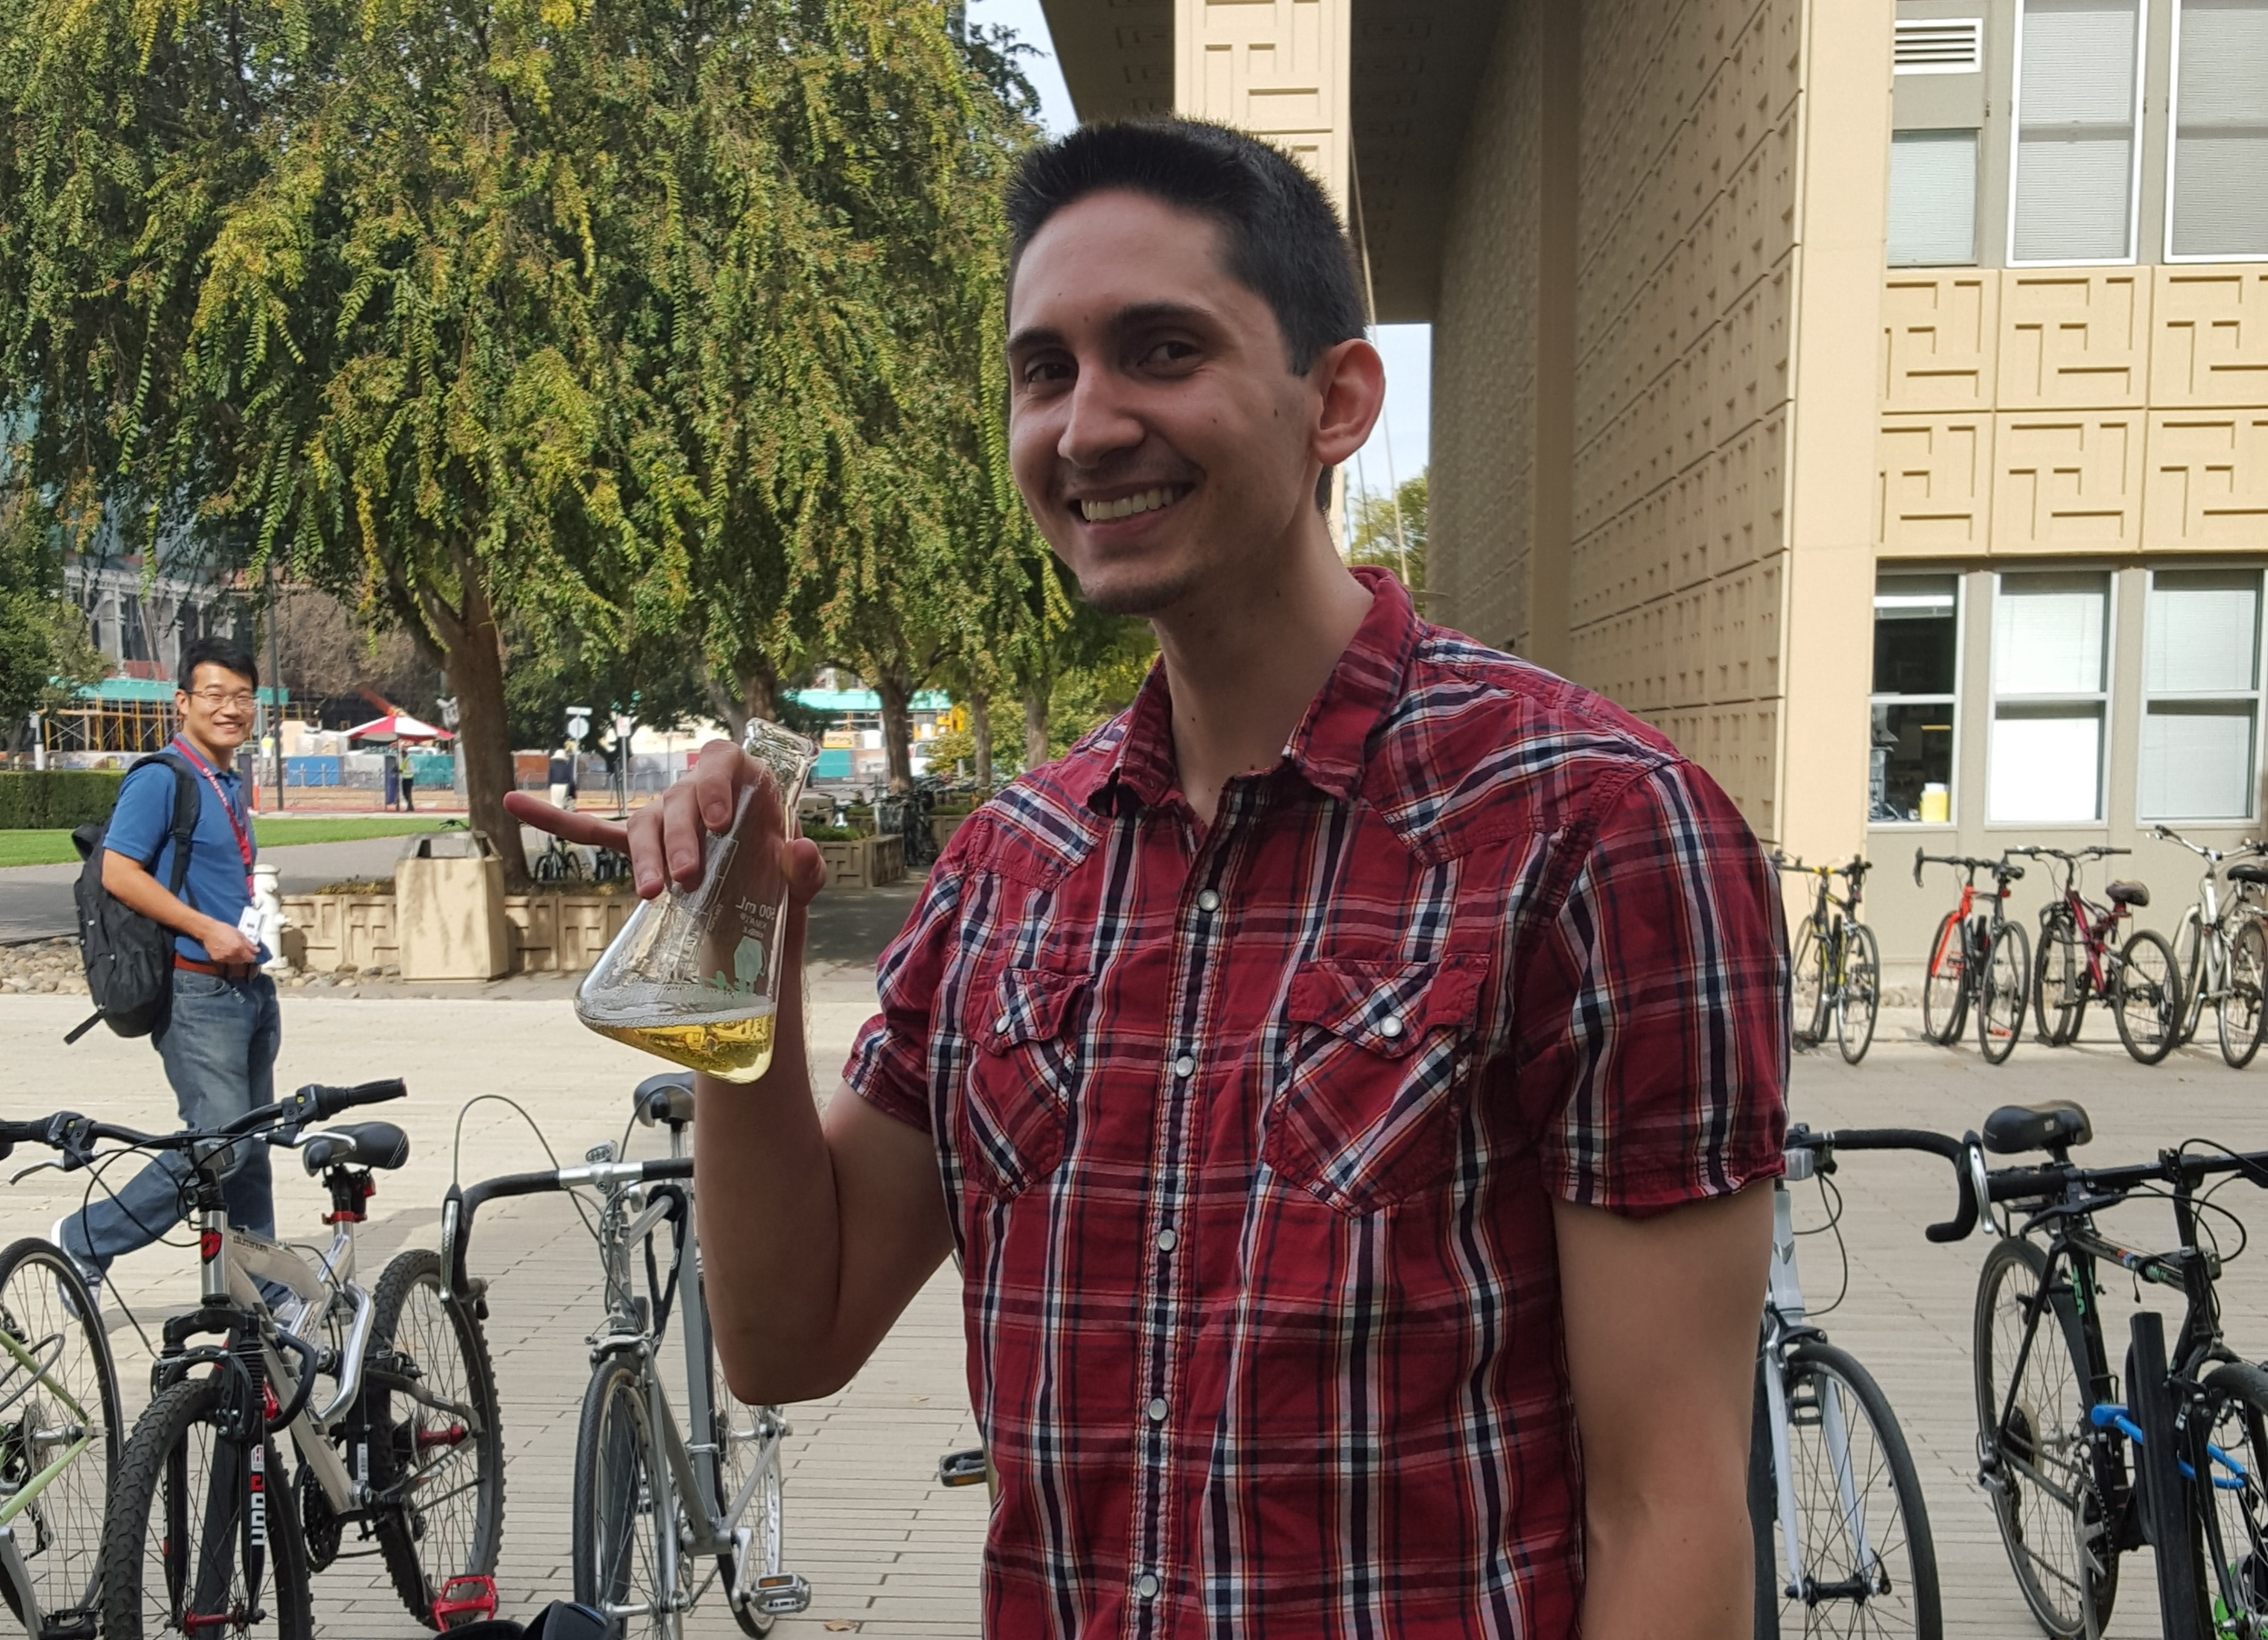 Brayon passes his quals - and drinks from the lab trophy!